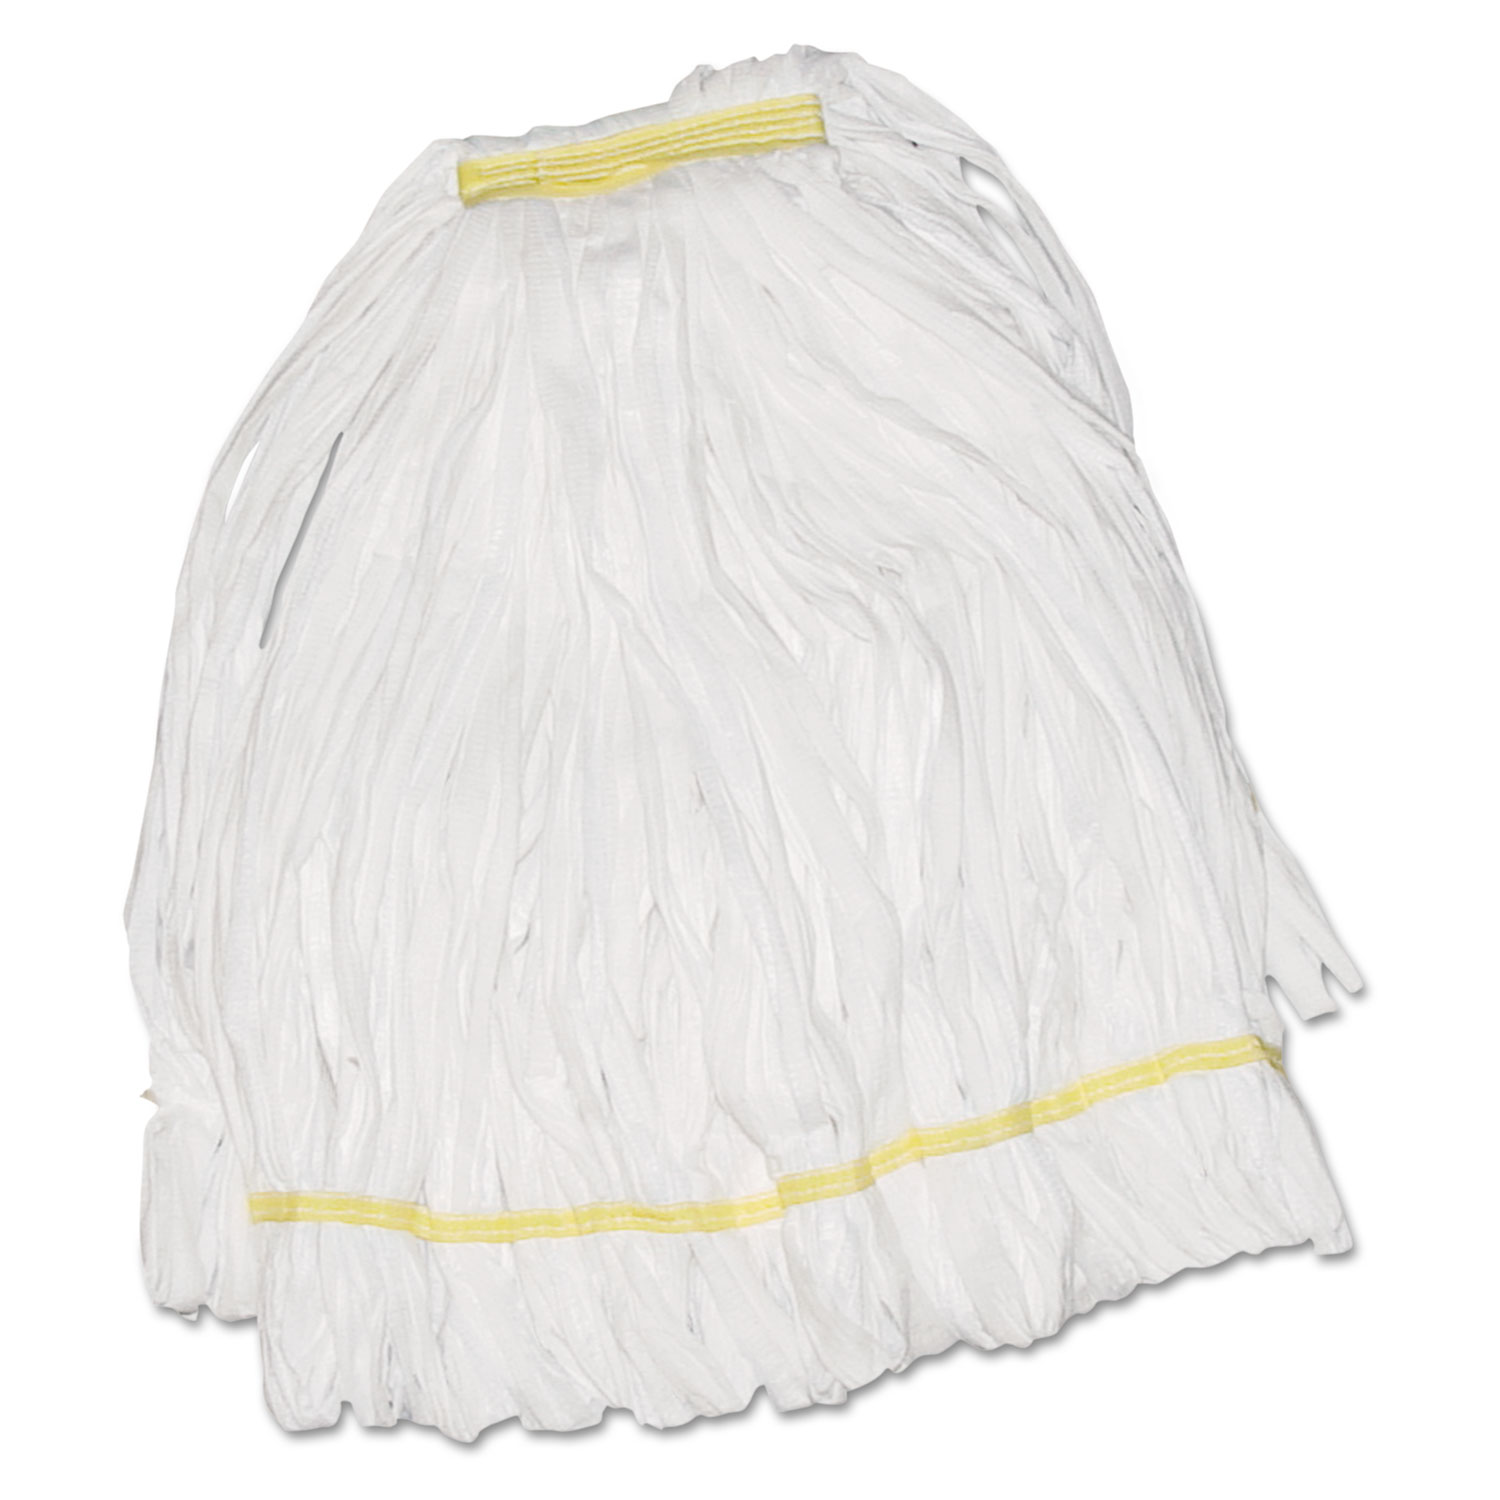 Mop Head, Looped, Enviro Clean With Tailband, Large, White, 12/Carton